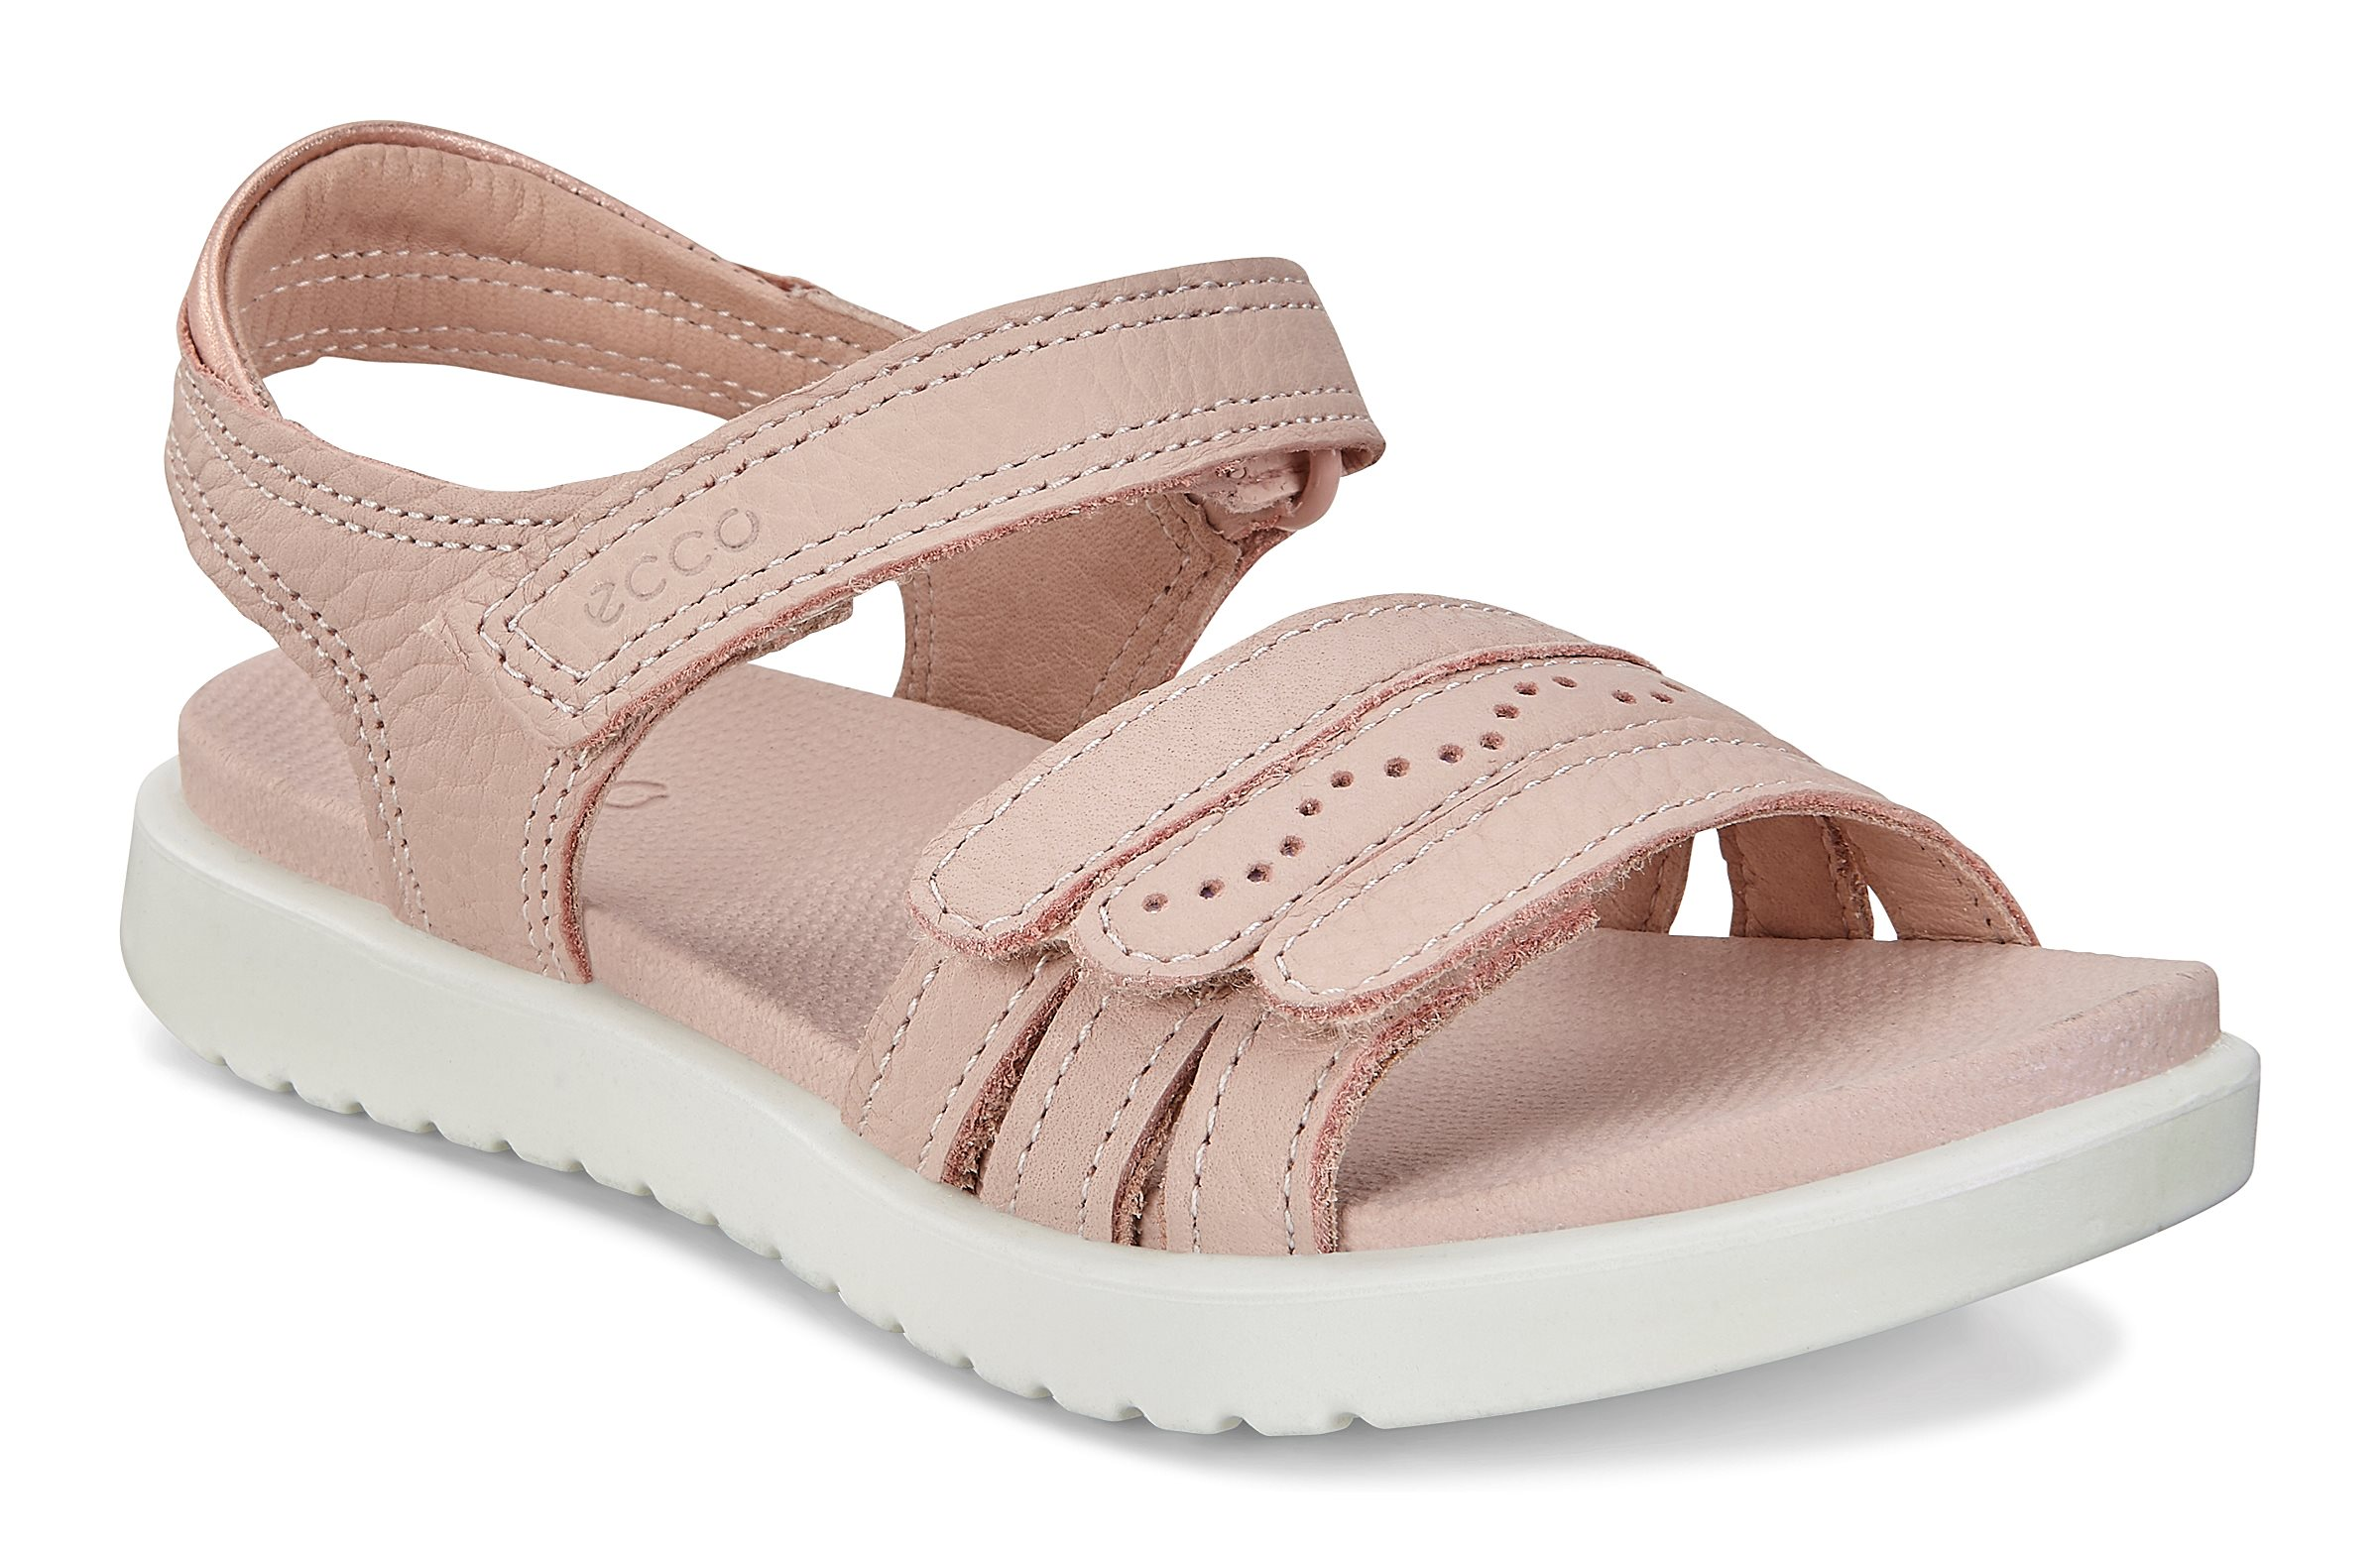 45a1ebfb7a0 ECCO FLORA | SANDALS | GIRLS | KIDS | ECCO® OFFICIAL ONLINE STORE